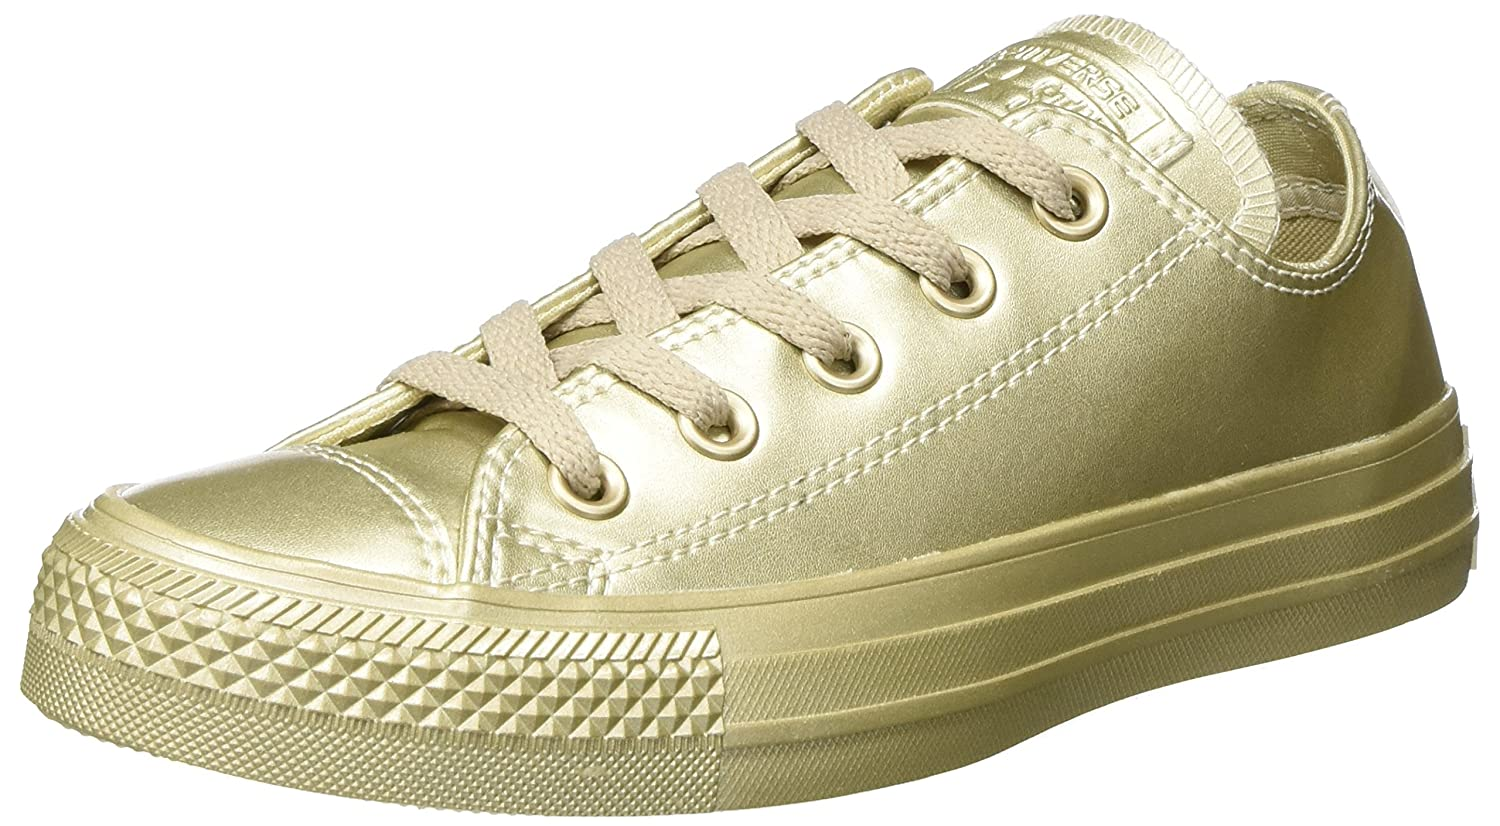 TALLA 36 EU. Converse Chuck Taylor All Star, Zapatillas Unisex Adulto